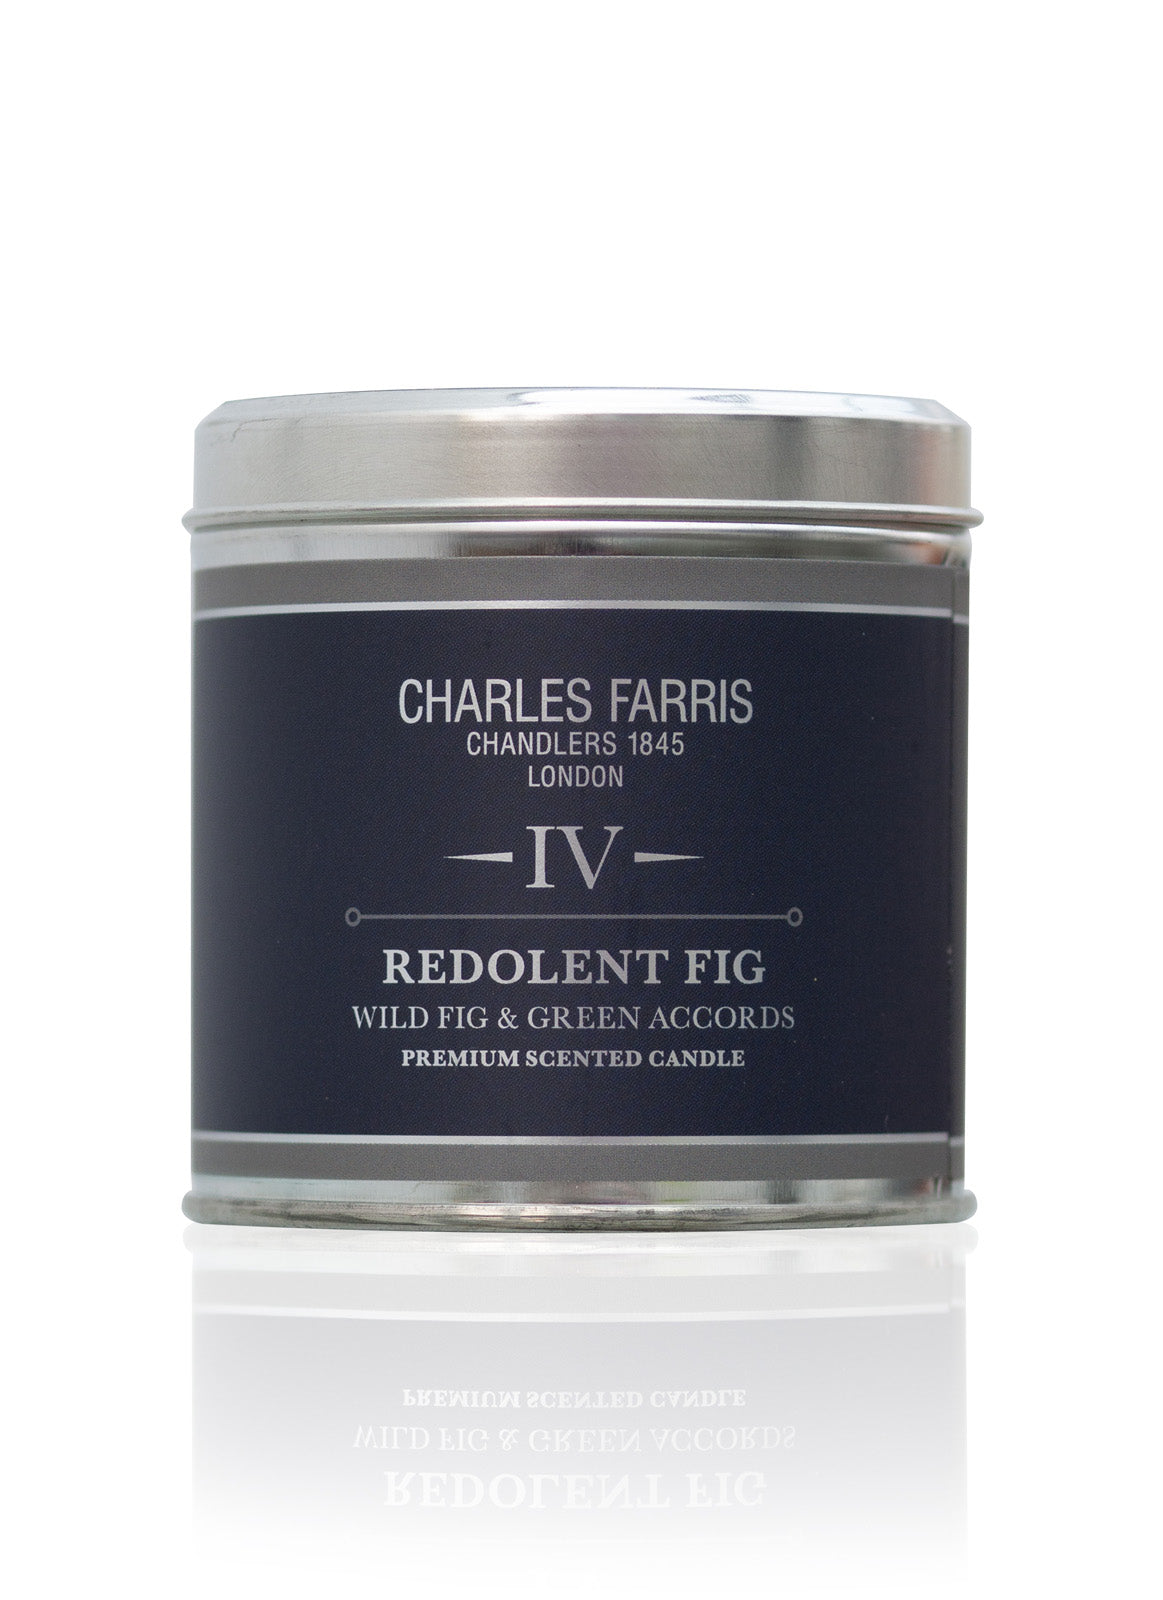 Redolent Fig Tin Candle | Wild Fig & Green Accords